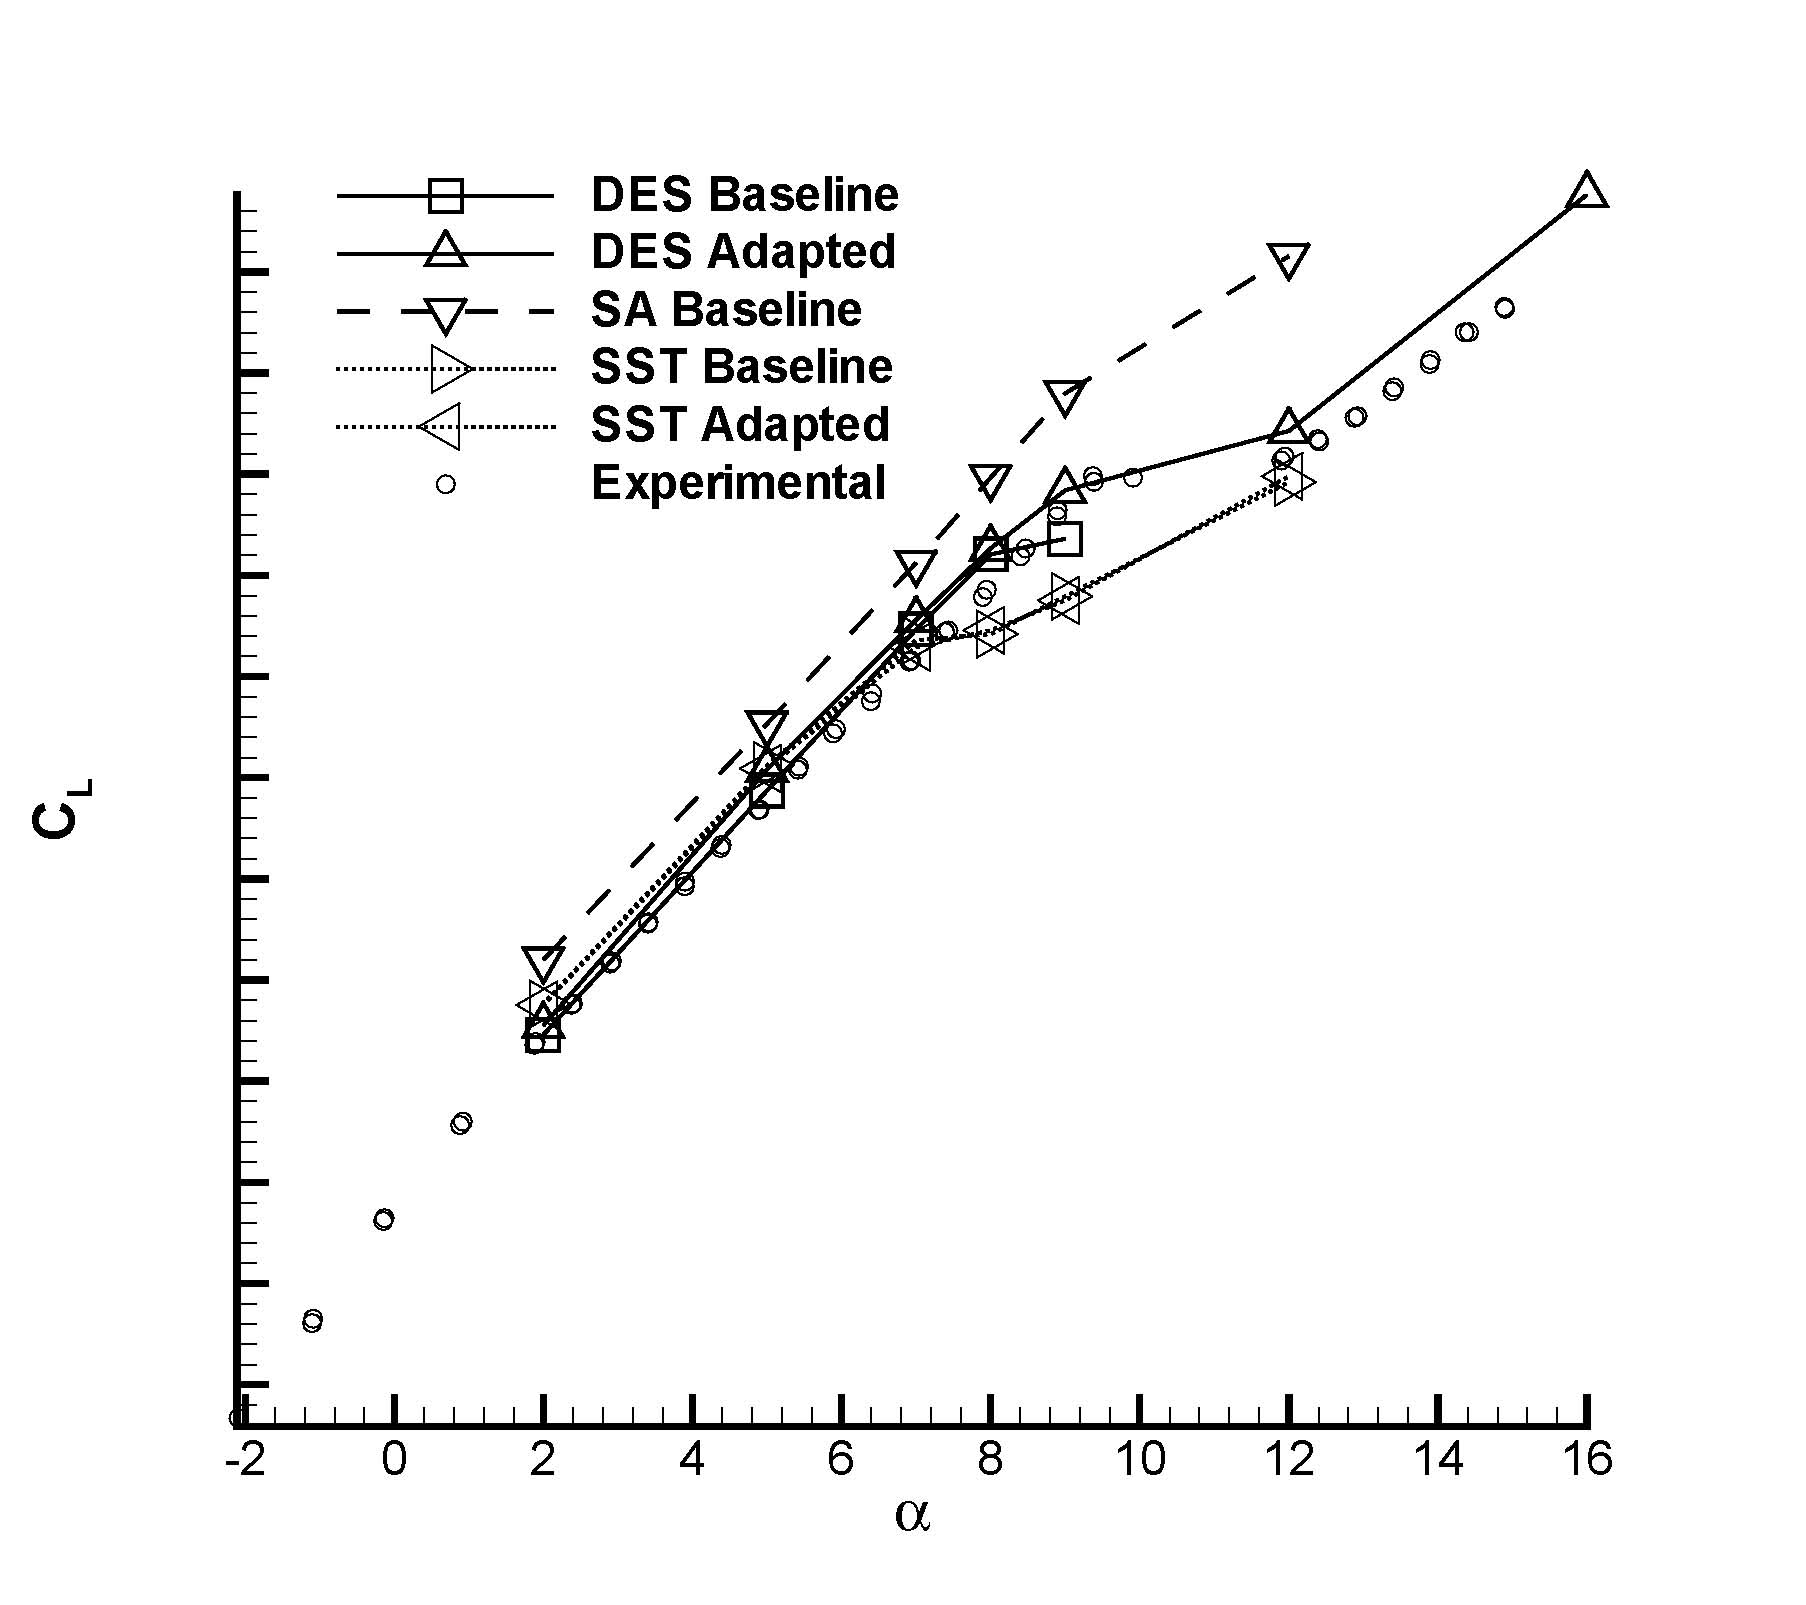 3: Figure 3: Coefficient of lift vs. angle of attack for the pre-production F/A-18E. DES on a baseline and adapted grid vs. RANS models.